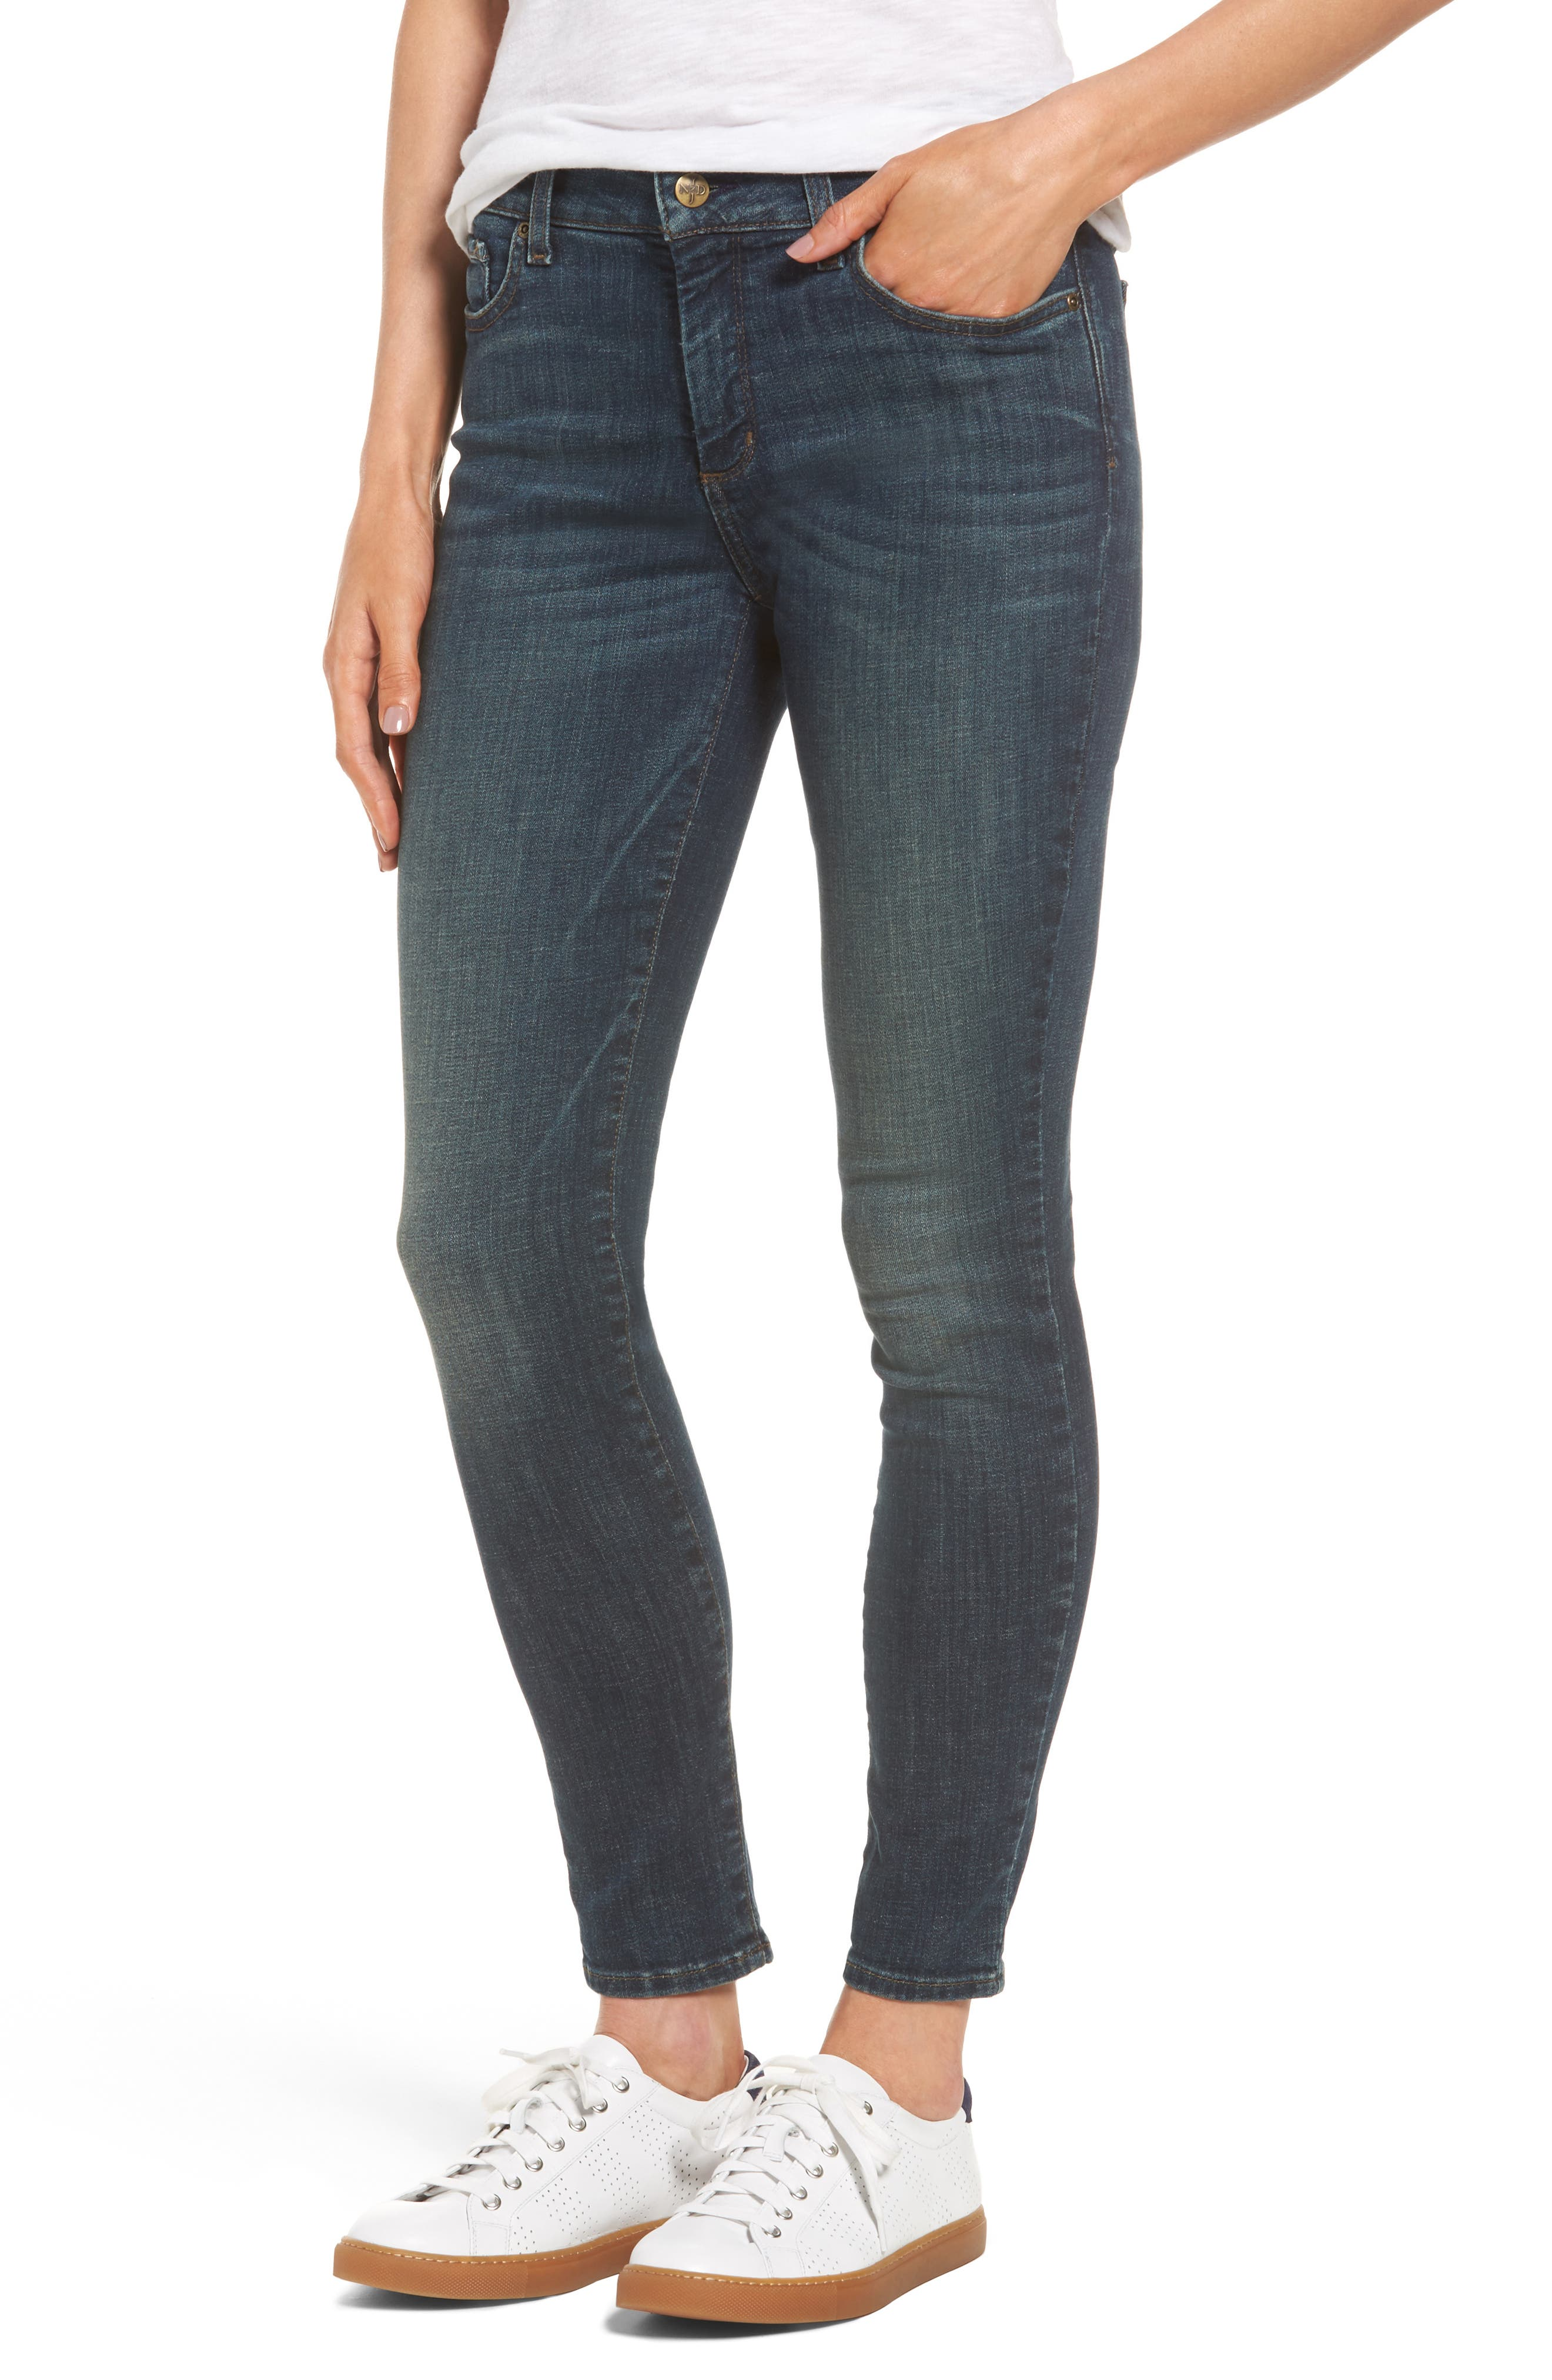 Ami Stretch Skinny Jeans,                         Main,                         color, Desert Gold